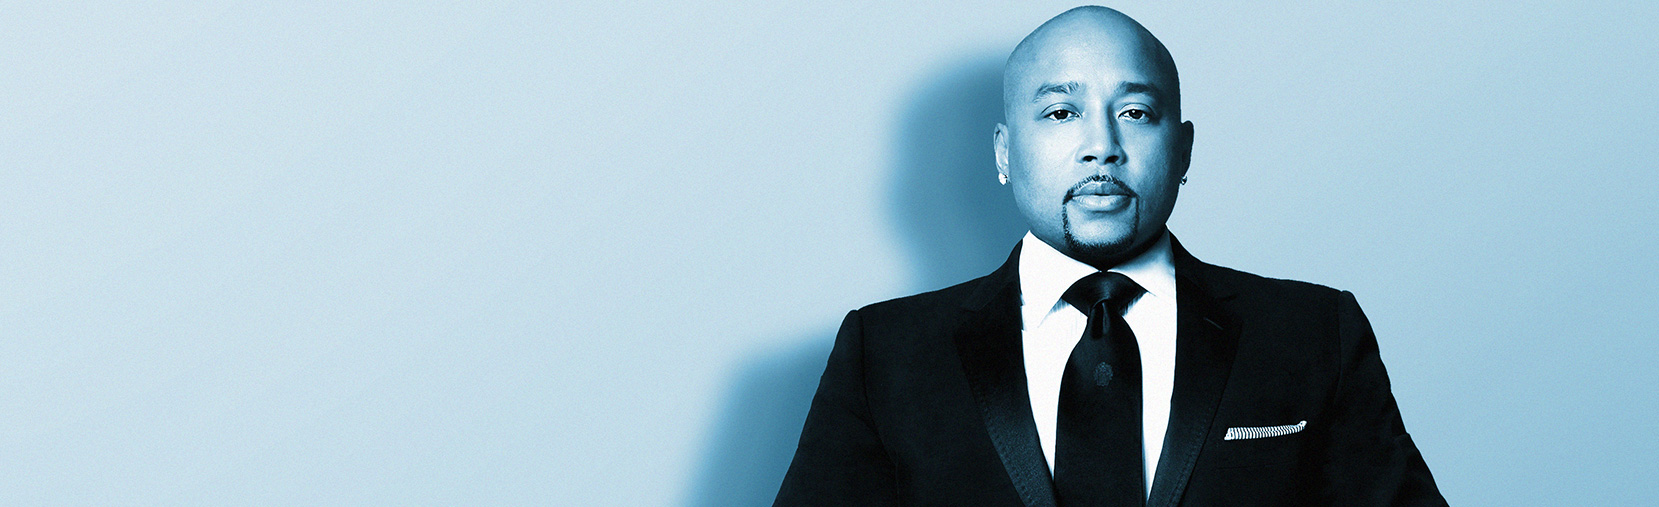 20181002101837 daymond psb podcast banner